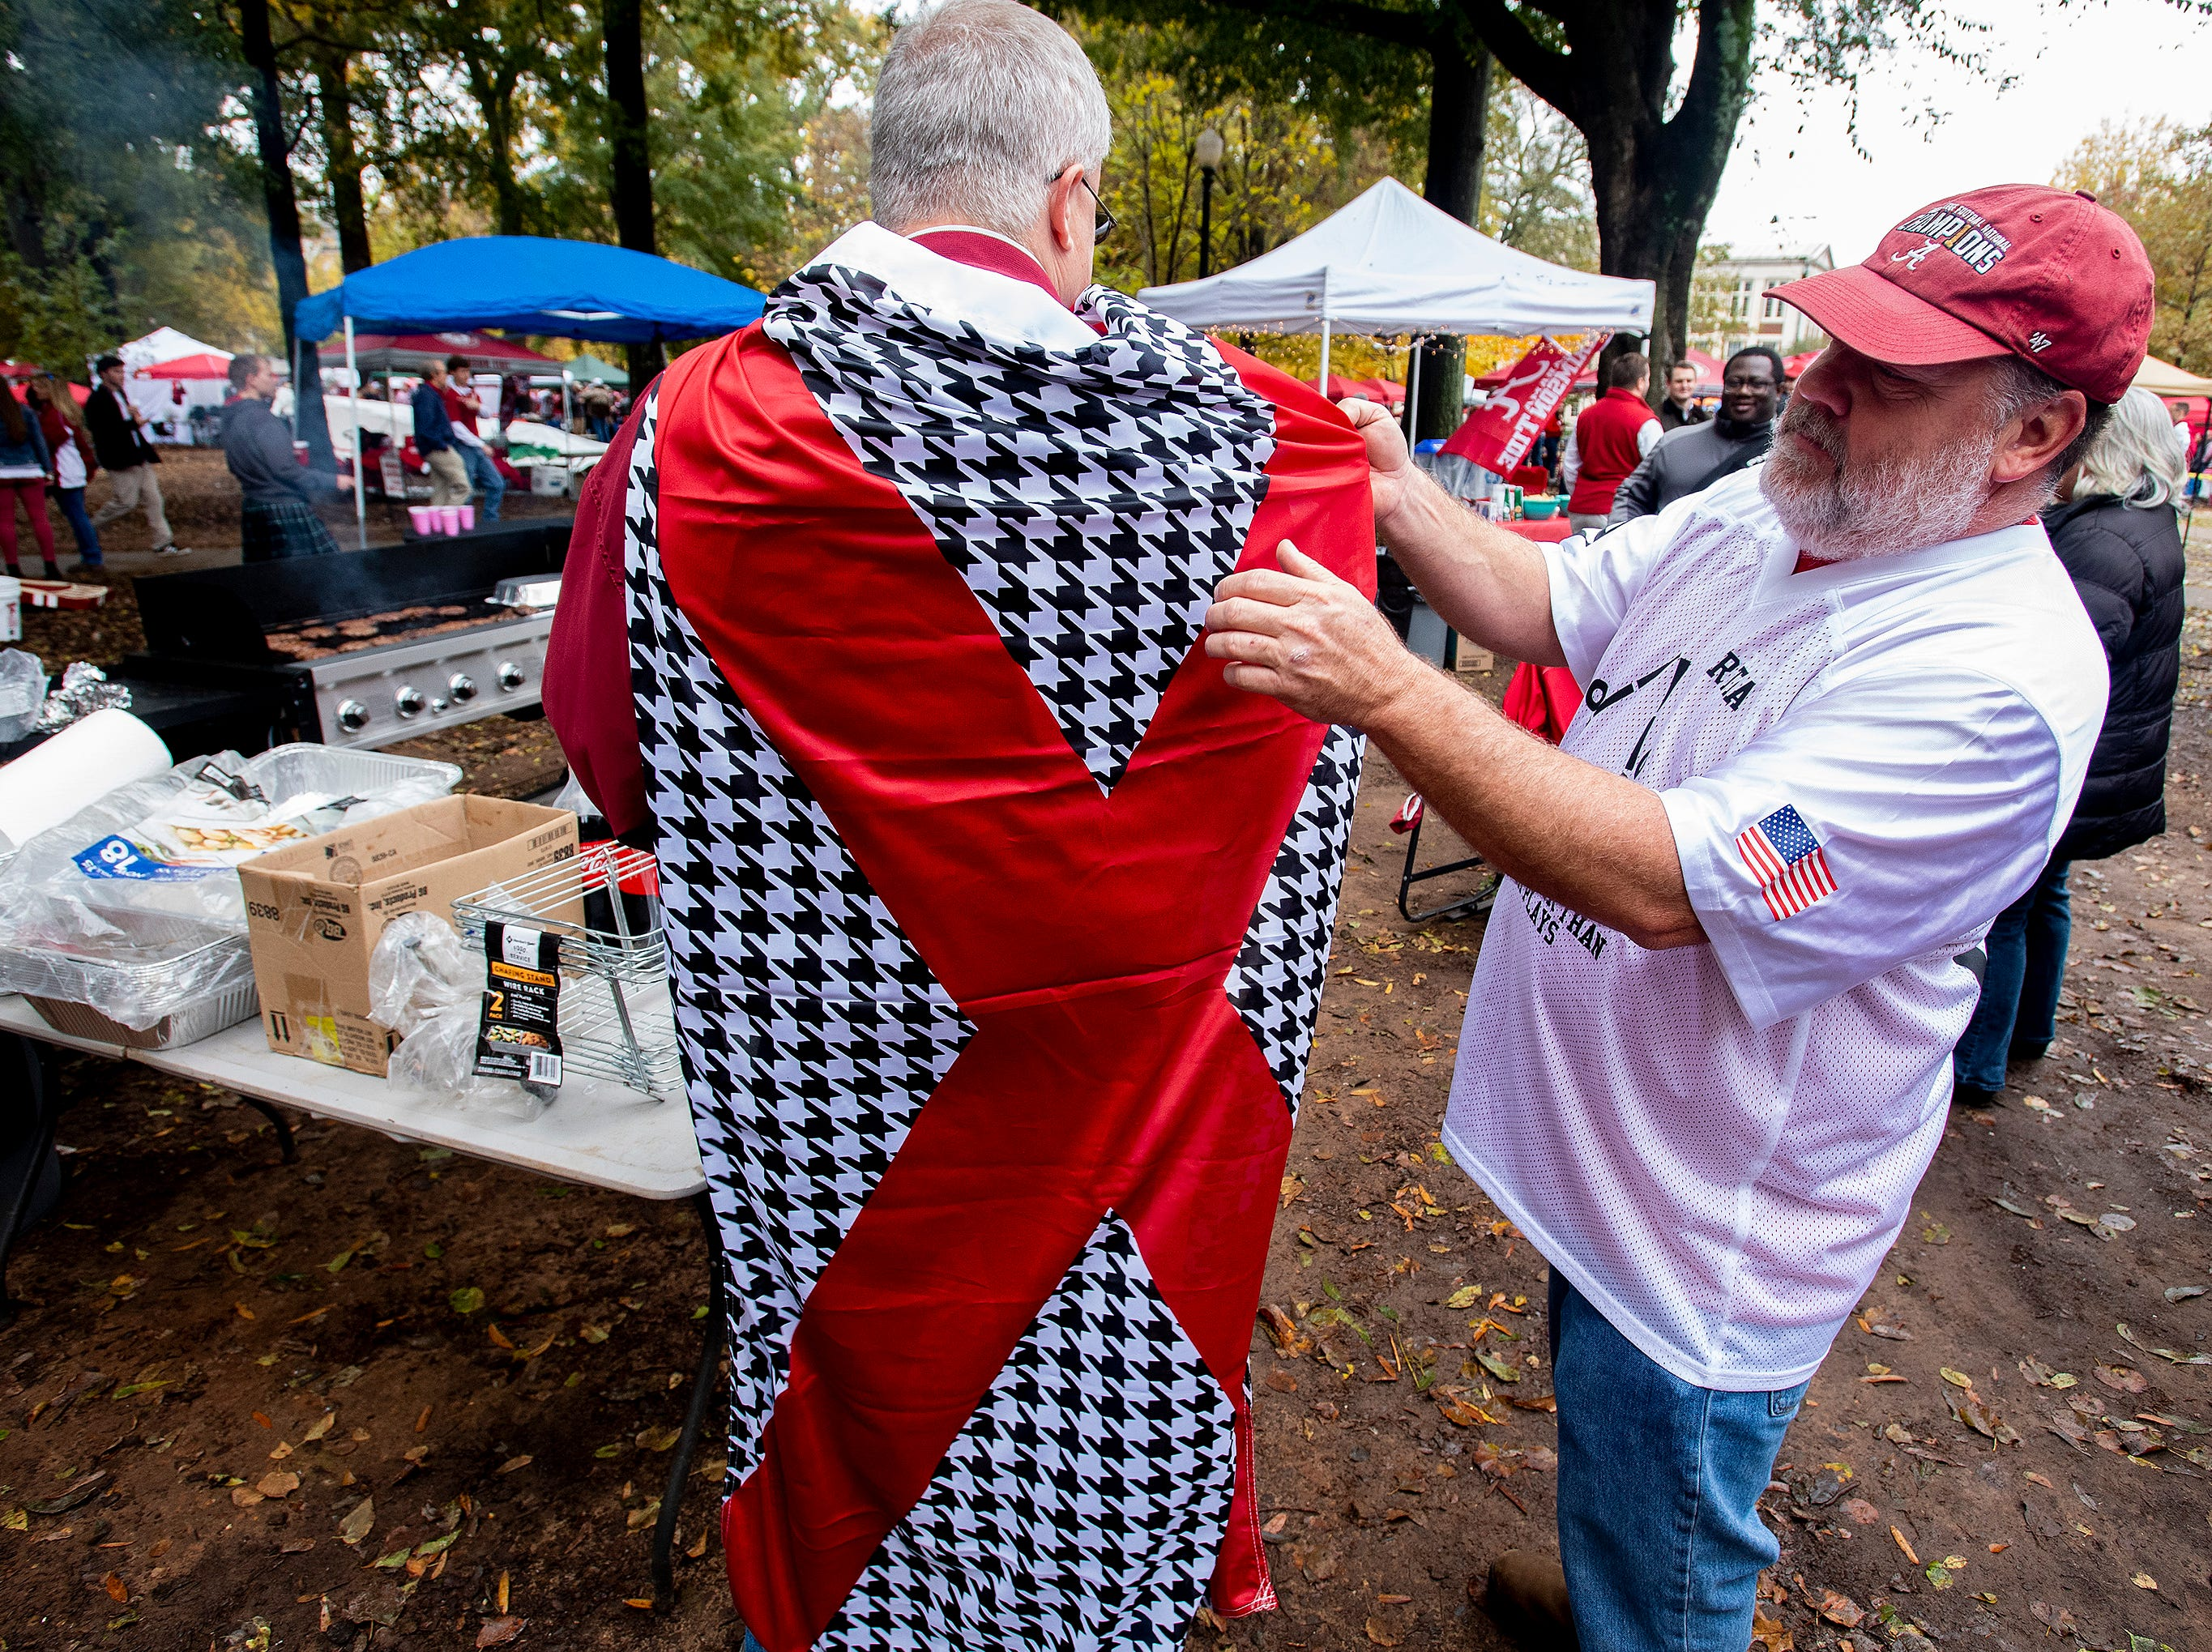 Joe Geer adjusts the Alabama flag/cape of Alan Murr while tailgating before the Iron Bowl at  Bryant-Denny Stadium in Tuscaloosa, Ala., on Saturday November 24, 2018.